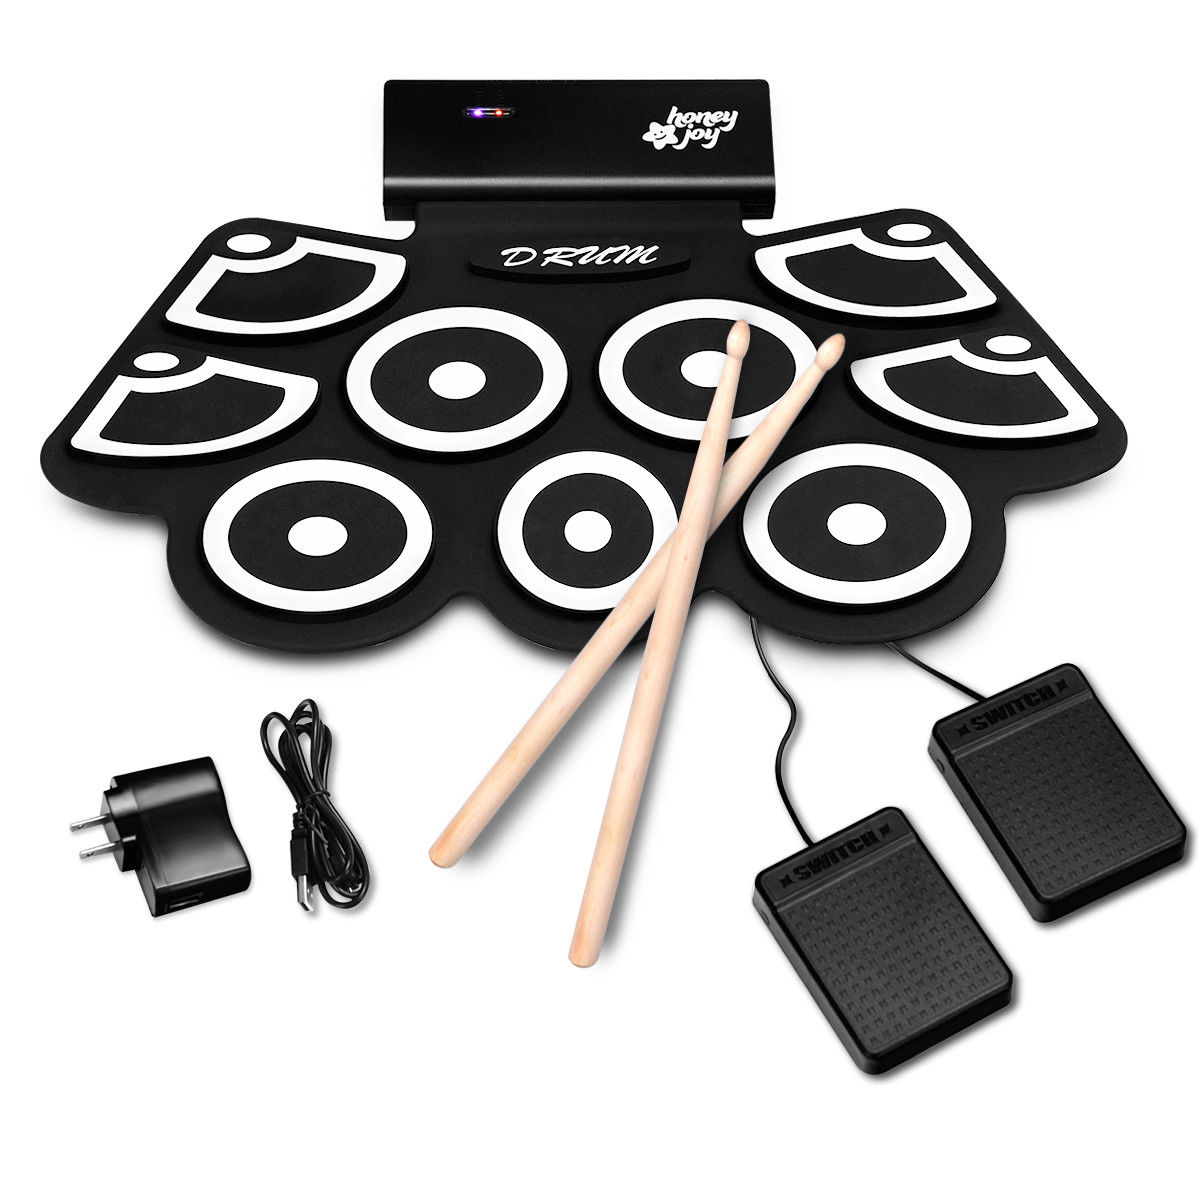 Gymax Electronic Roll Up Drum Set Silicone Rechargeable Bluetooth w/Foot Pedals Sticks